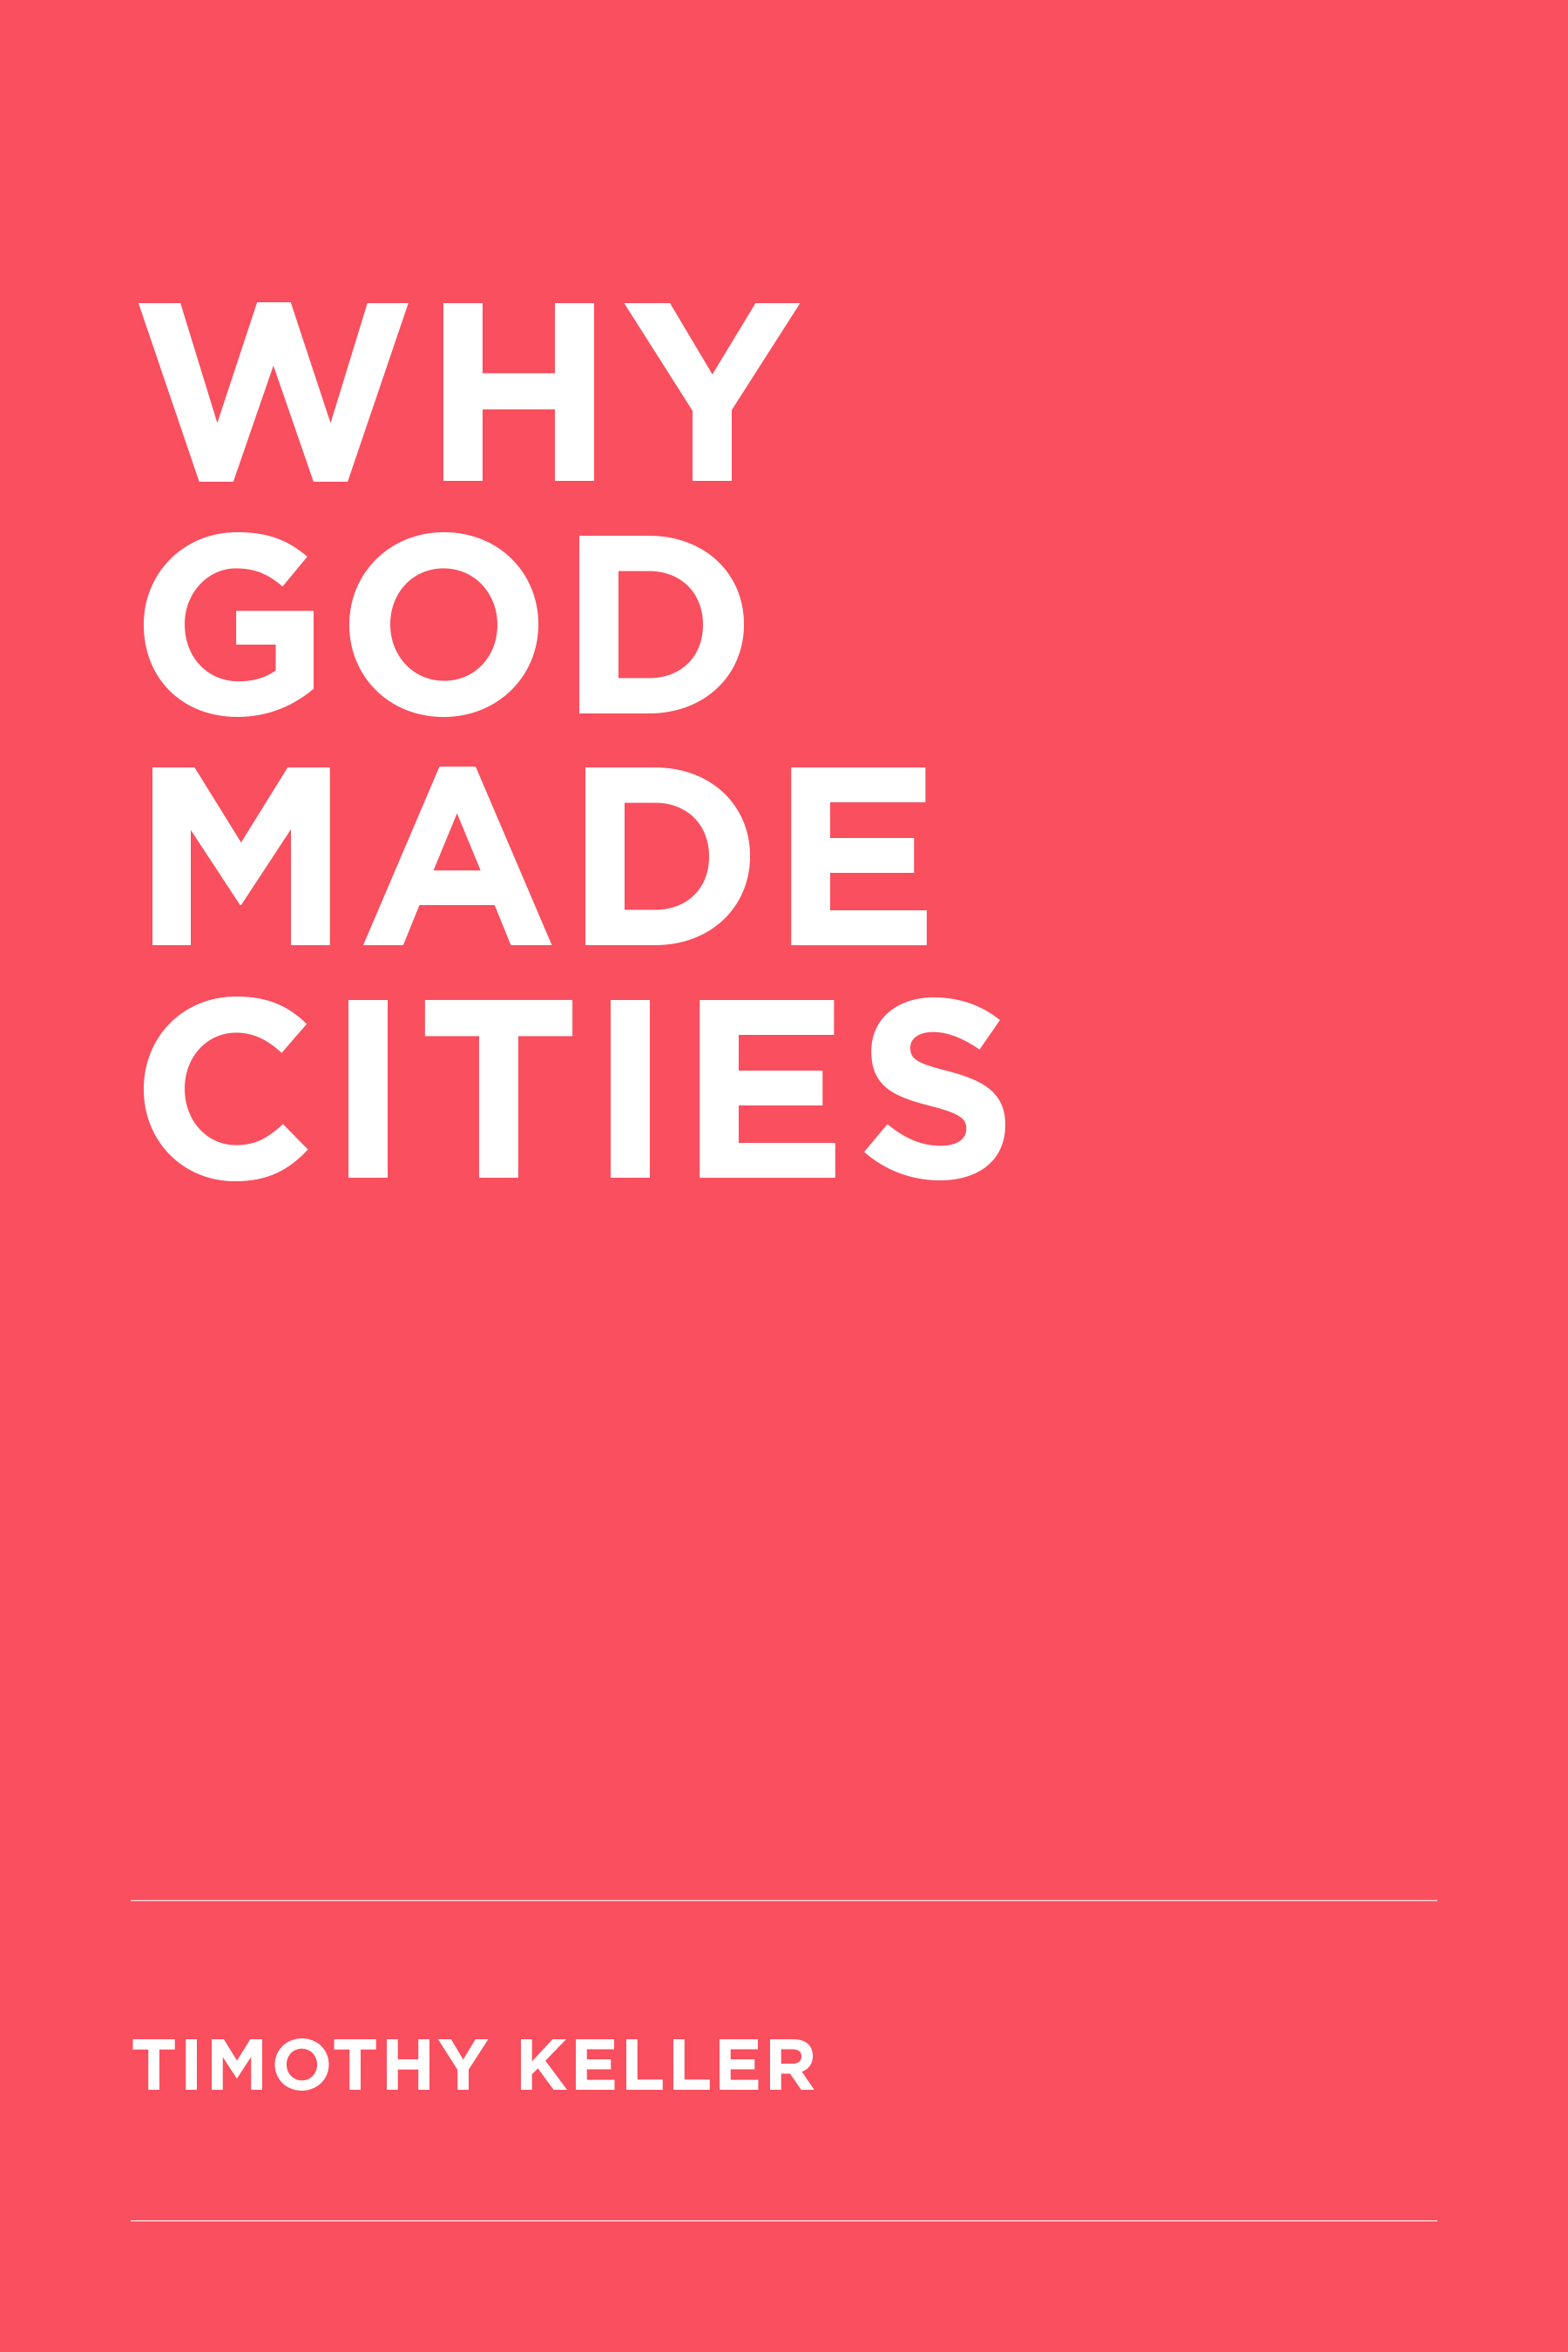 Why God Made Cities Cover.jpg